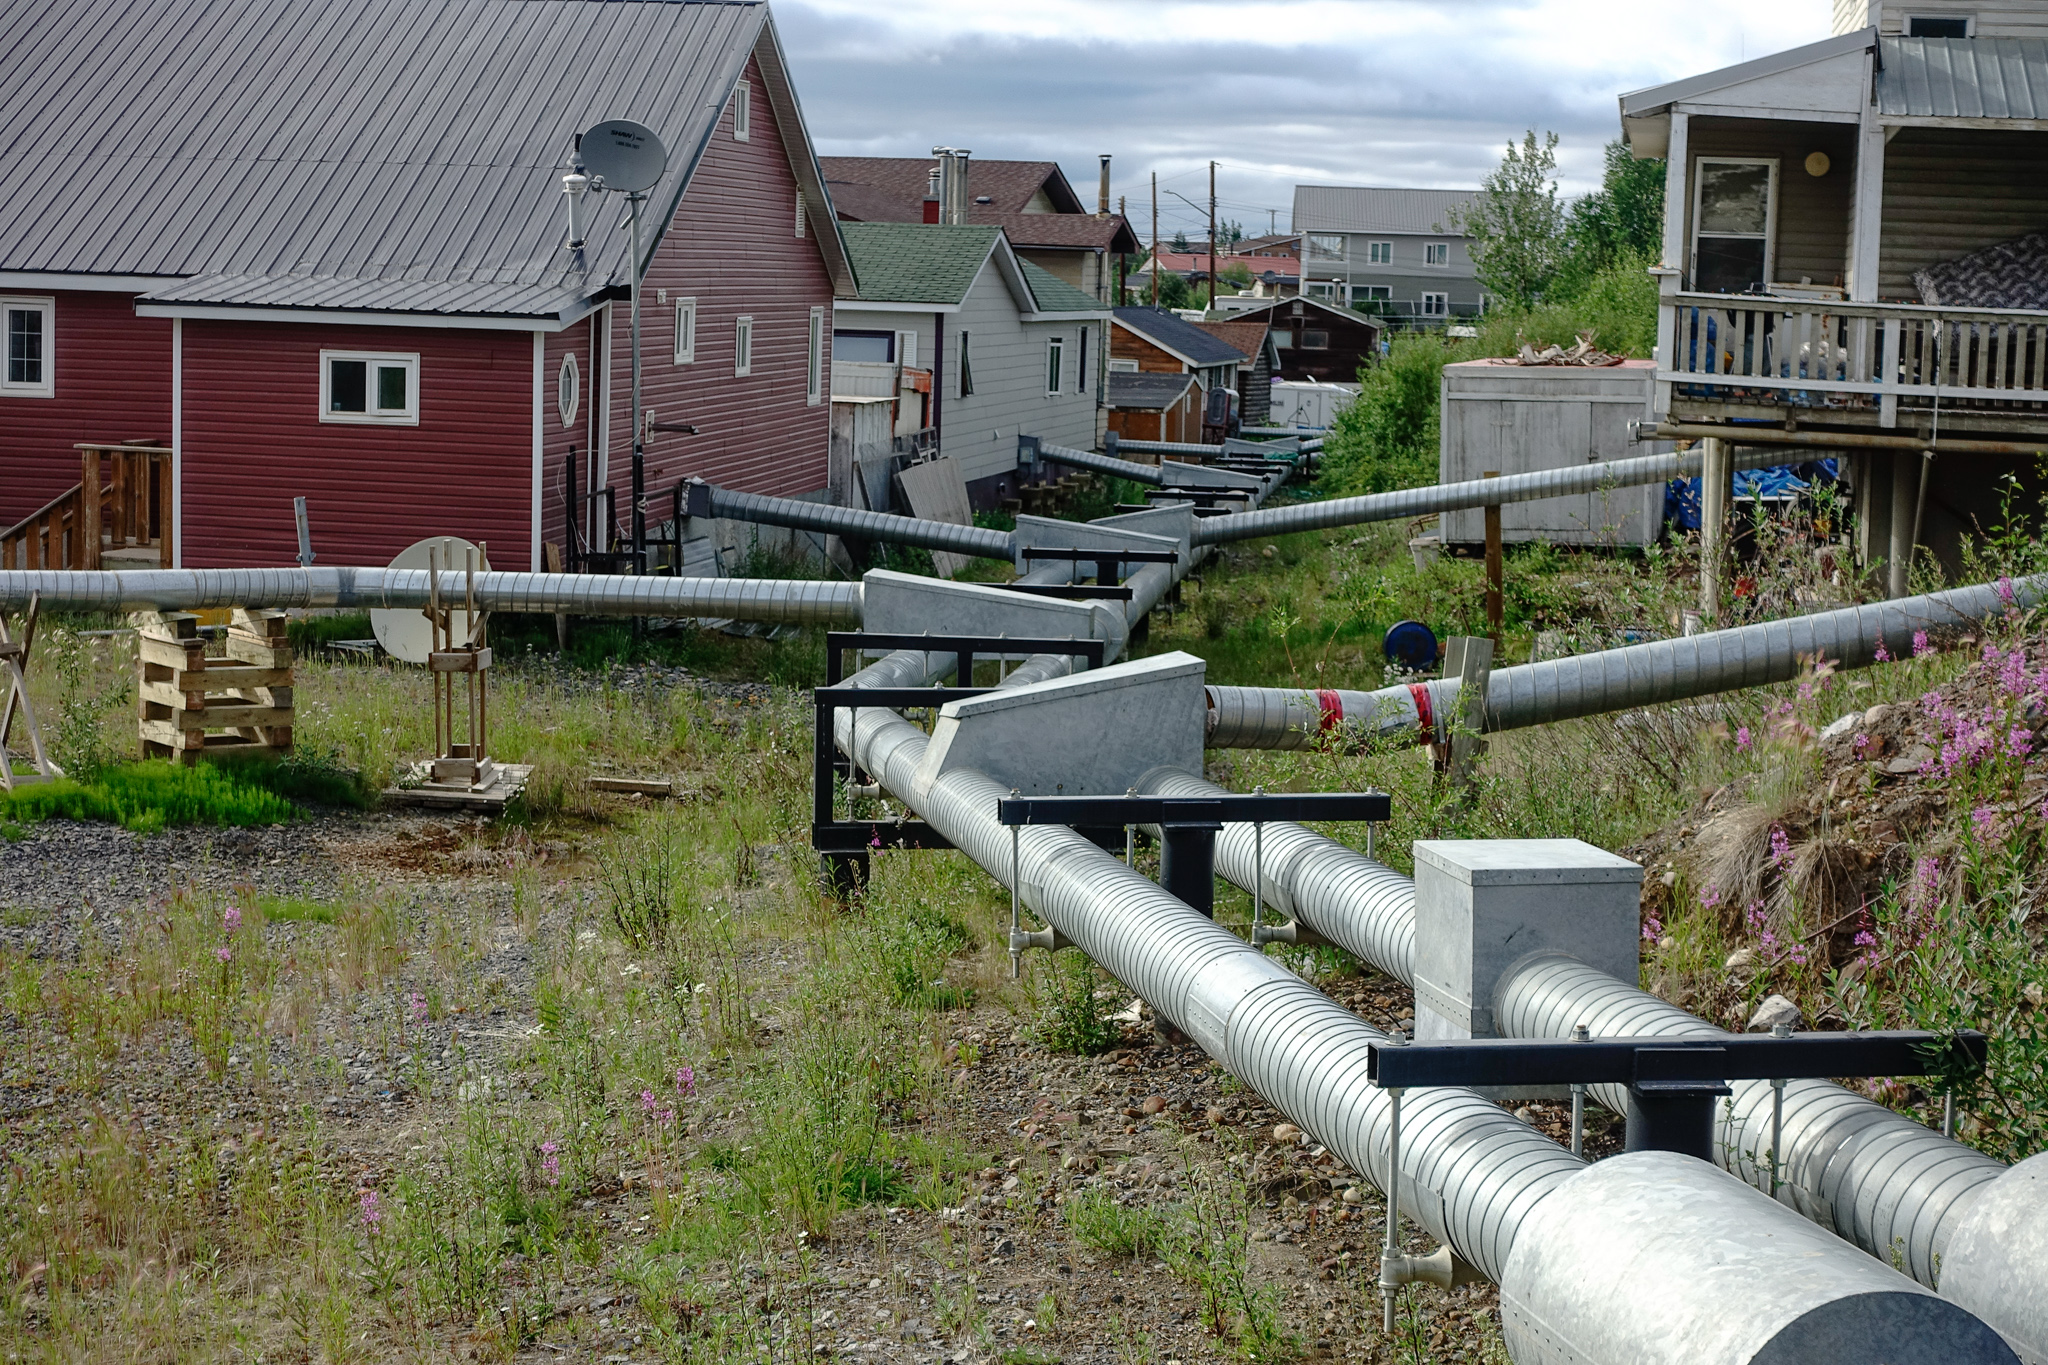 INUVIK PLUMBING. PERMAFROST MEANS THE PIPES REMAIN ABOVE GROUND (AND WELL INSULATED).